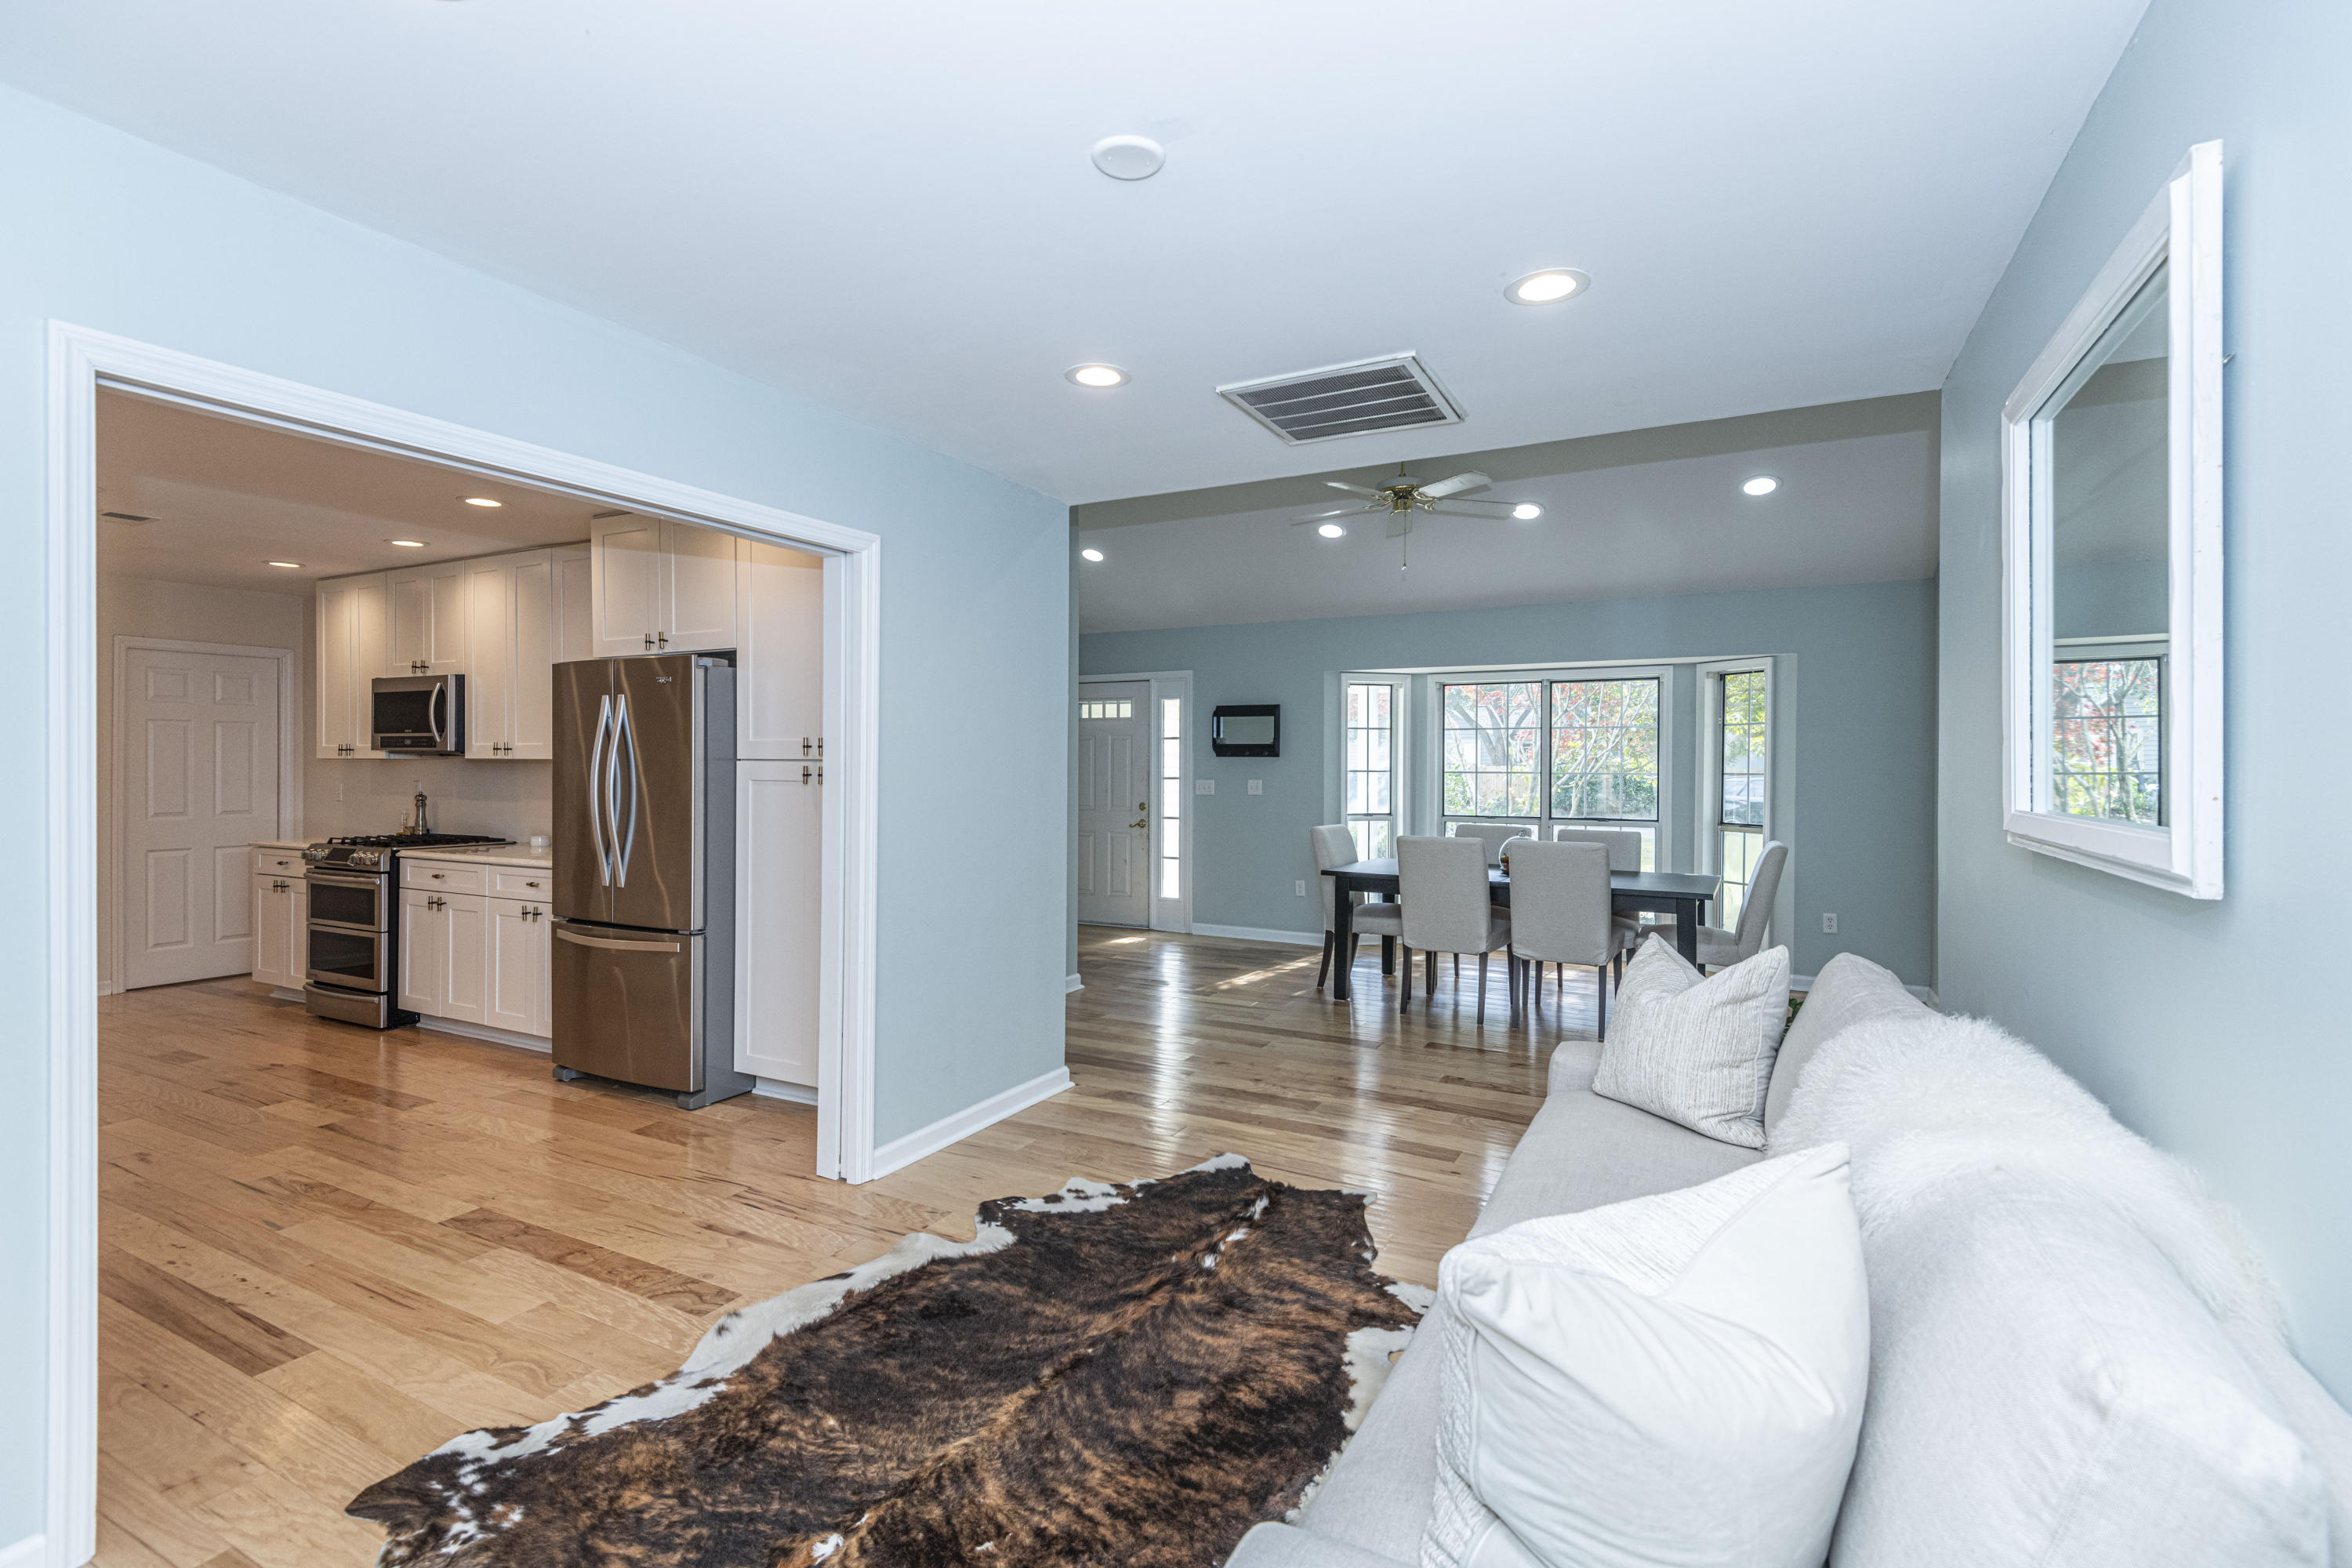 Coopers Pointe Homes For Sale - 1582 Hatteras Sound, Mount Pleasant, SC - 11